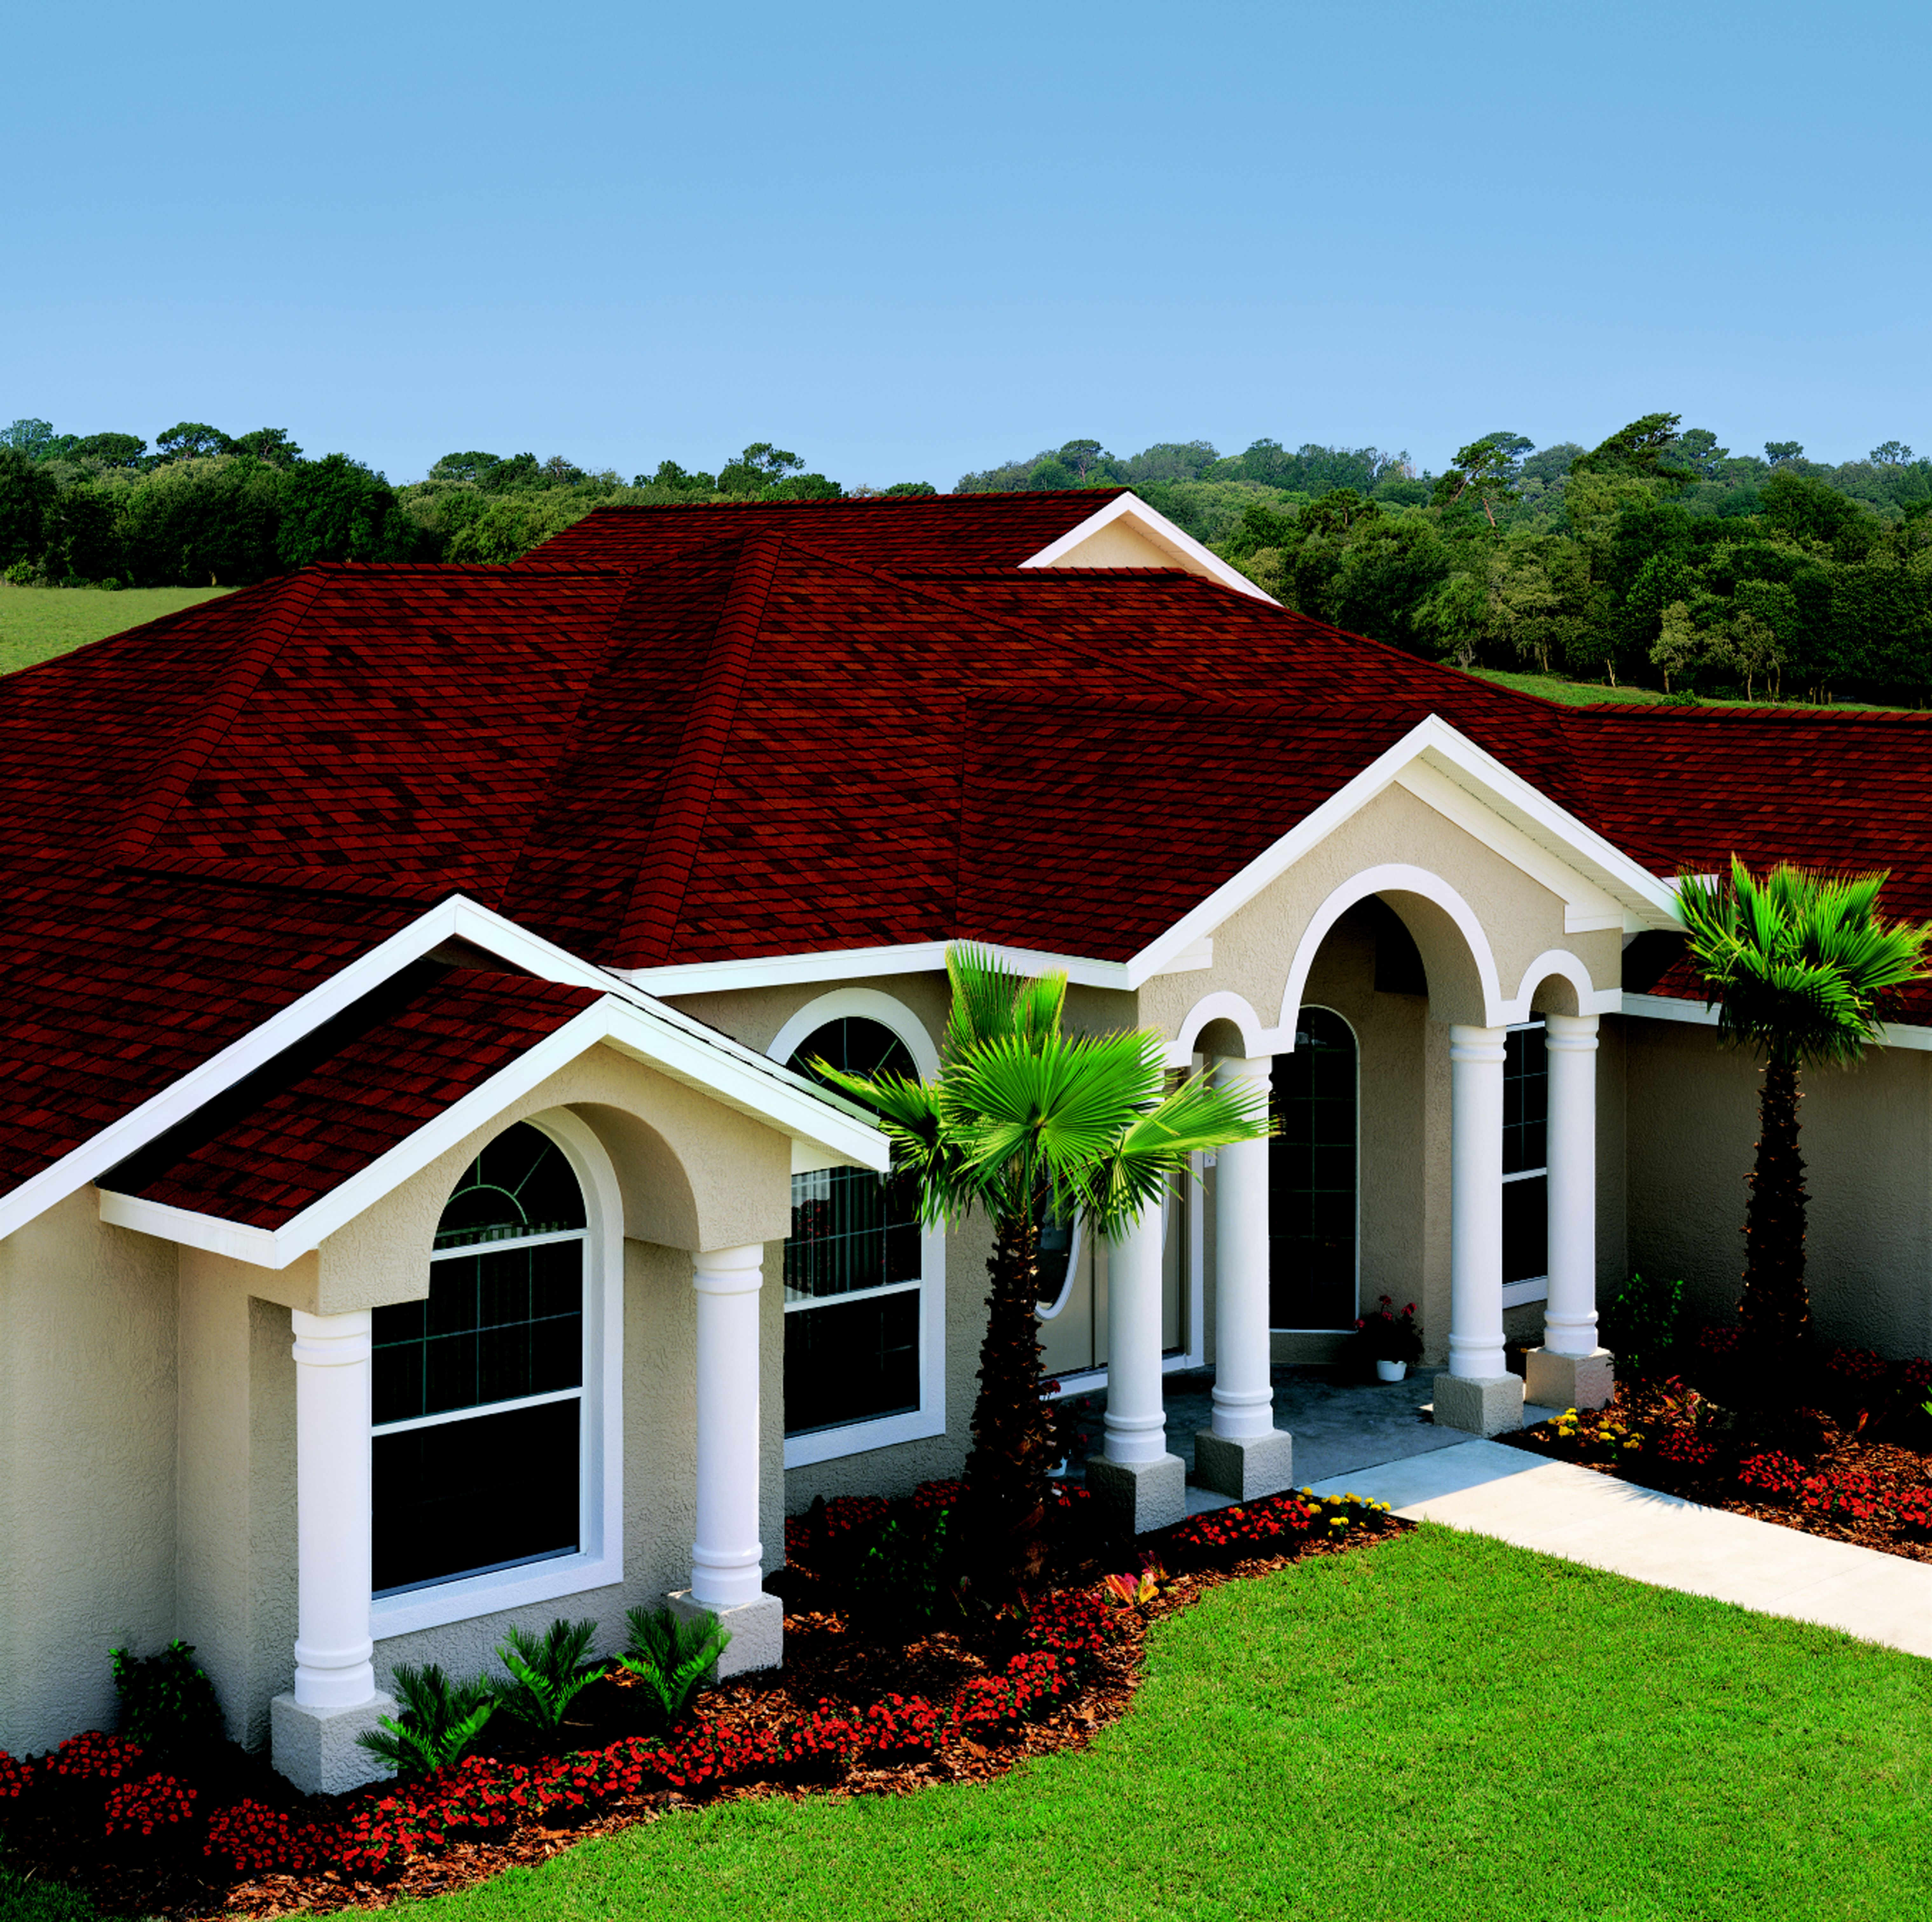 Home Designs Gallery And Interior Decorating Ideas Roof Design